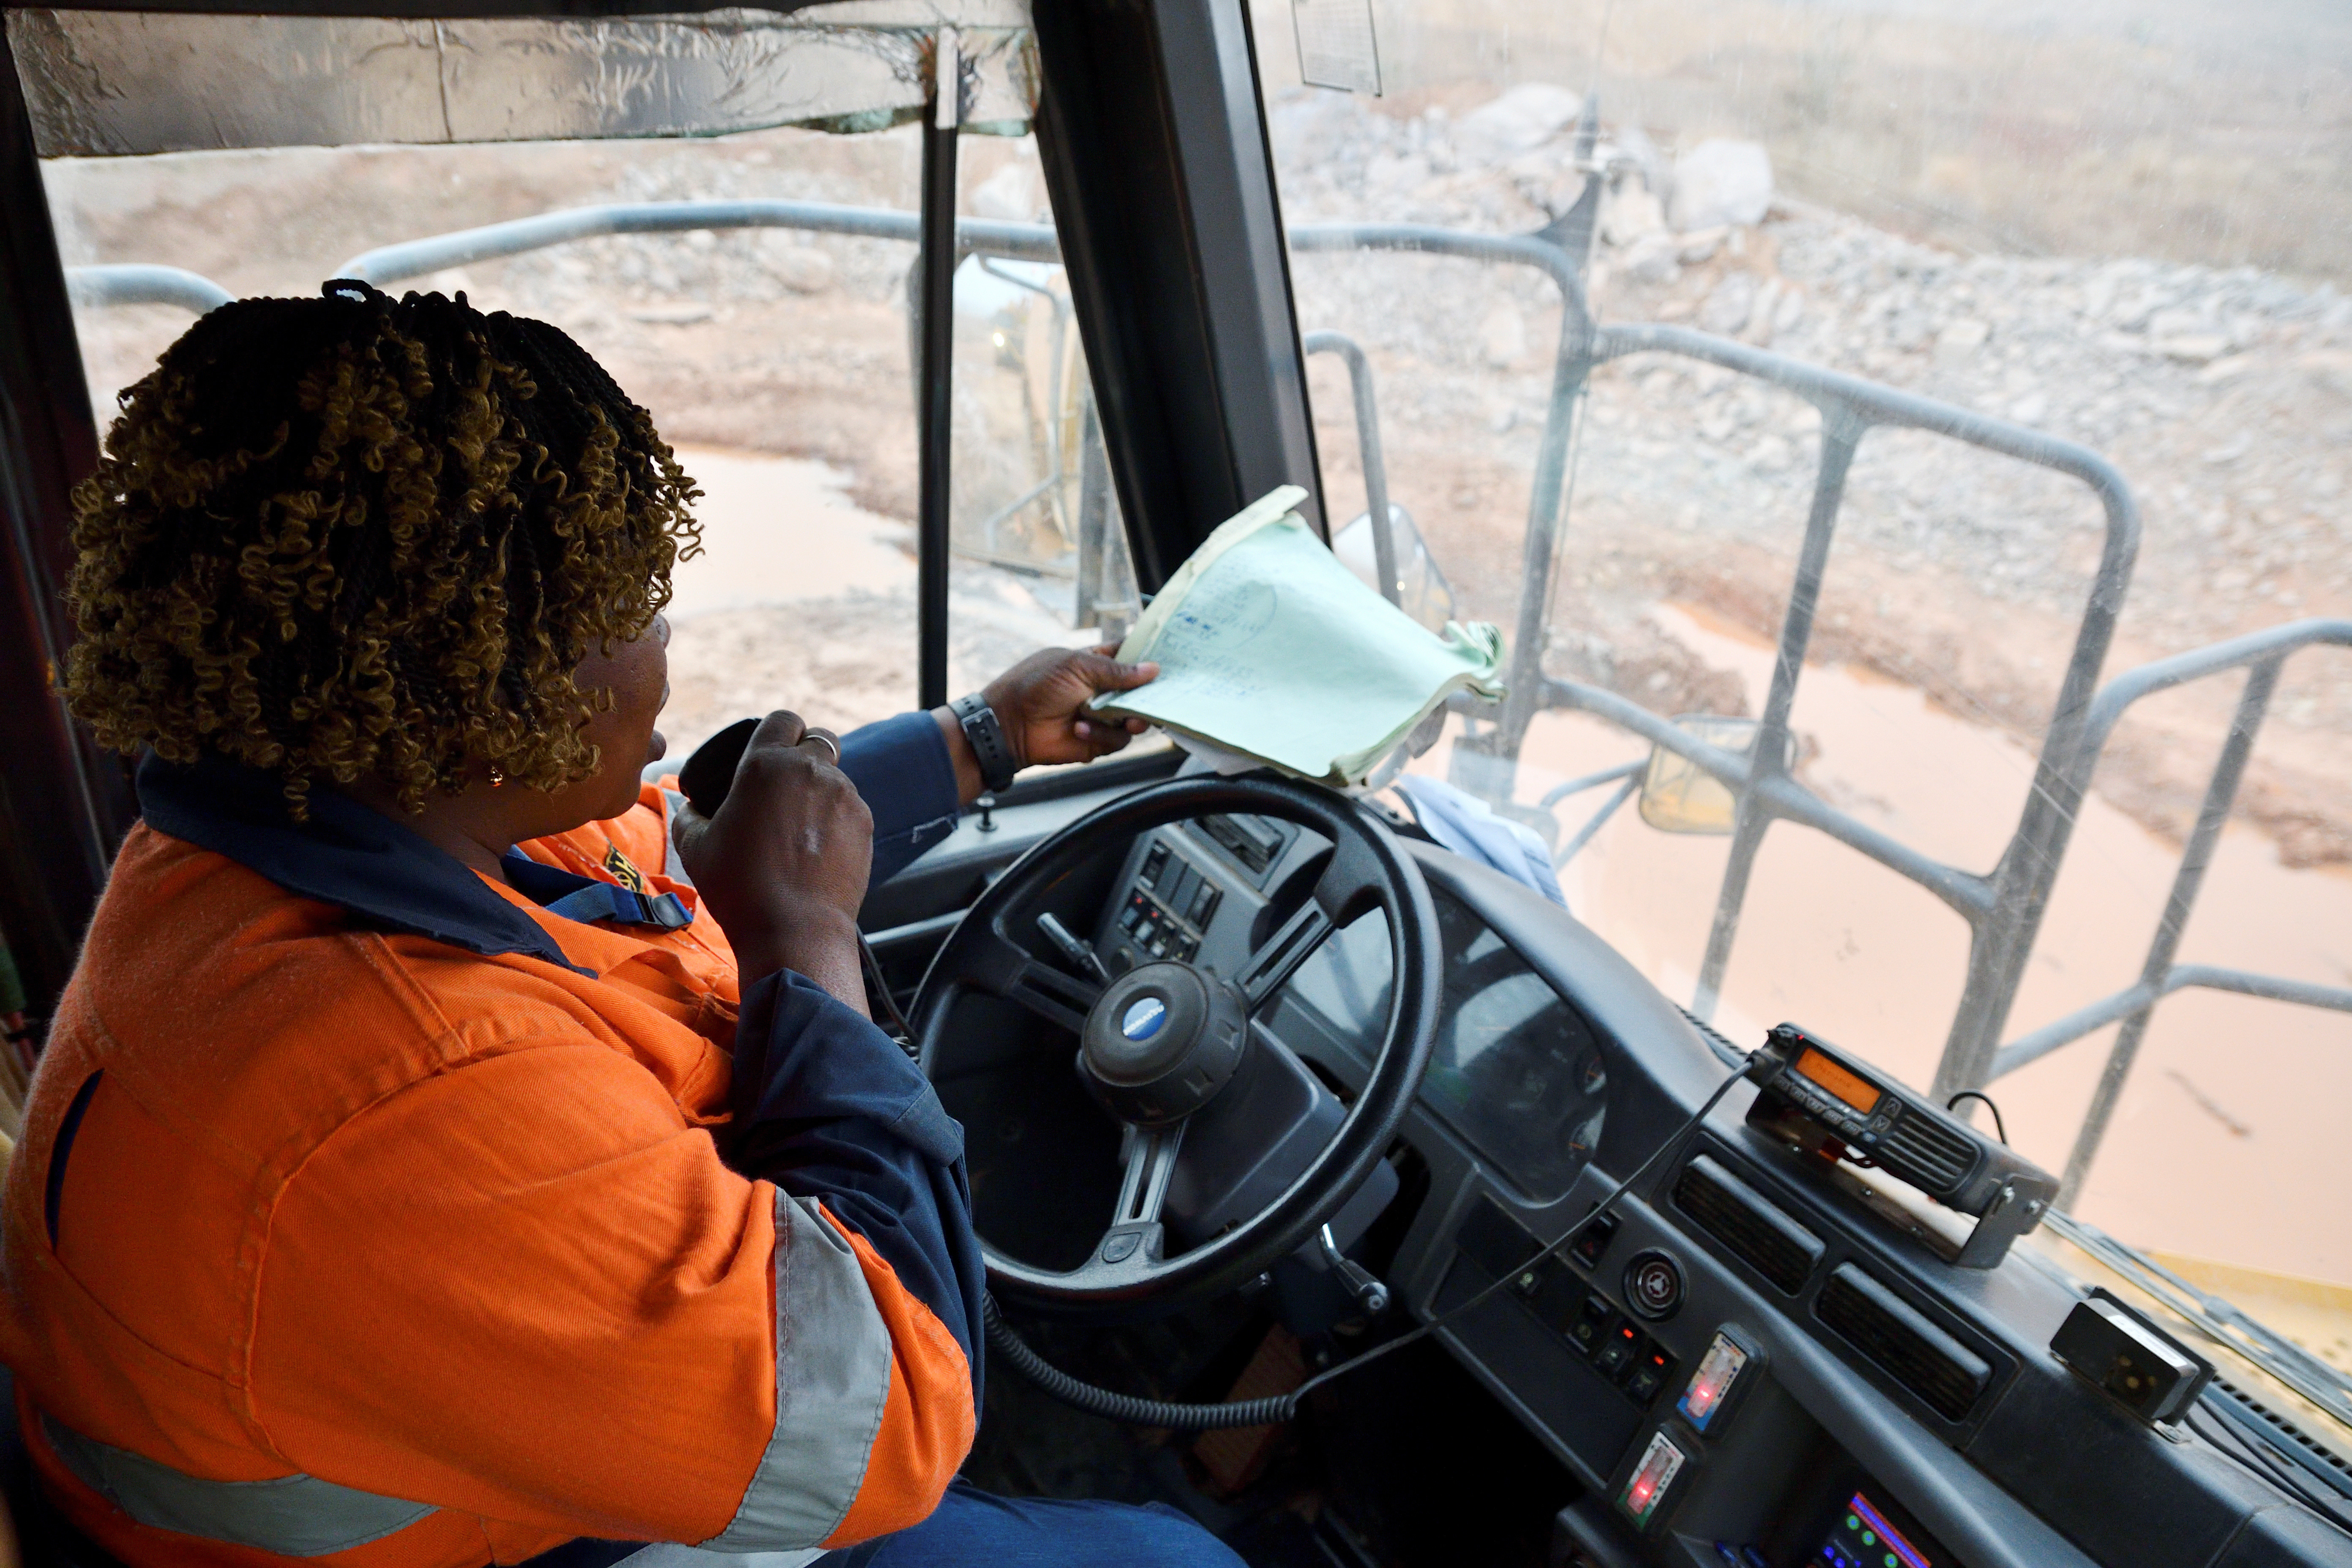 Tene Konate, 42, a truck driver, talks on a radio as she sits in her truck at the gold mine site, operated by Endeavour Mining Corporation in Hounde, Burkina Faso February 10, 2020. Picture taken February 10, 2020.